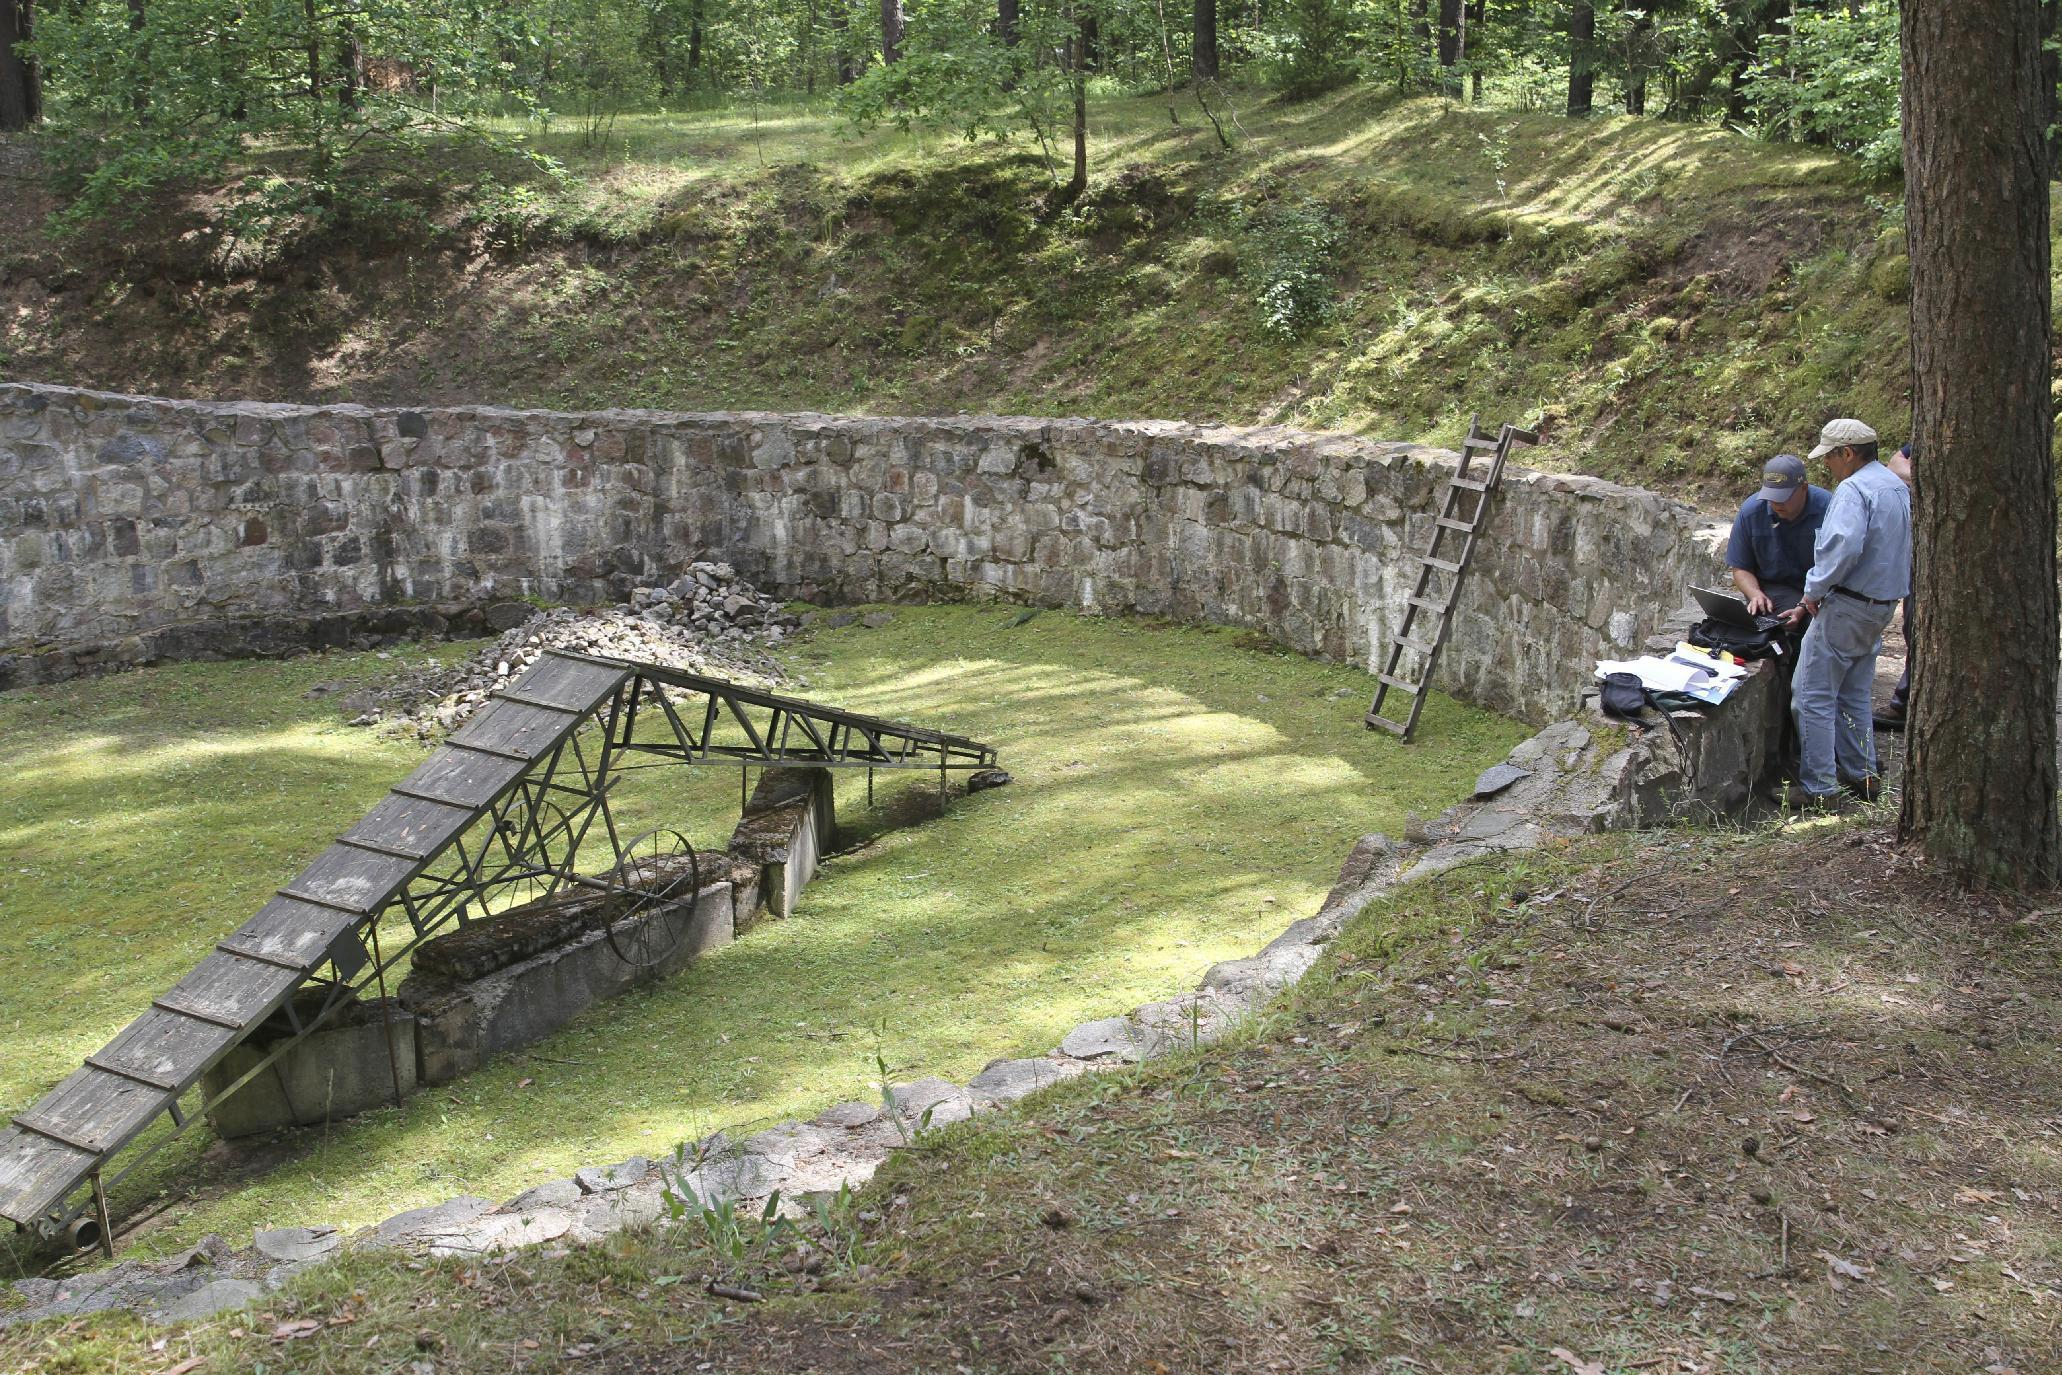 Israel: Dug by Jews, tunnel from Nazi era found in Lithuania